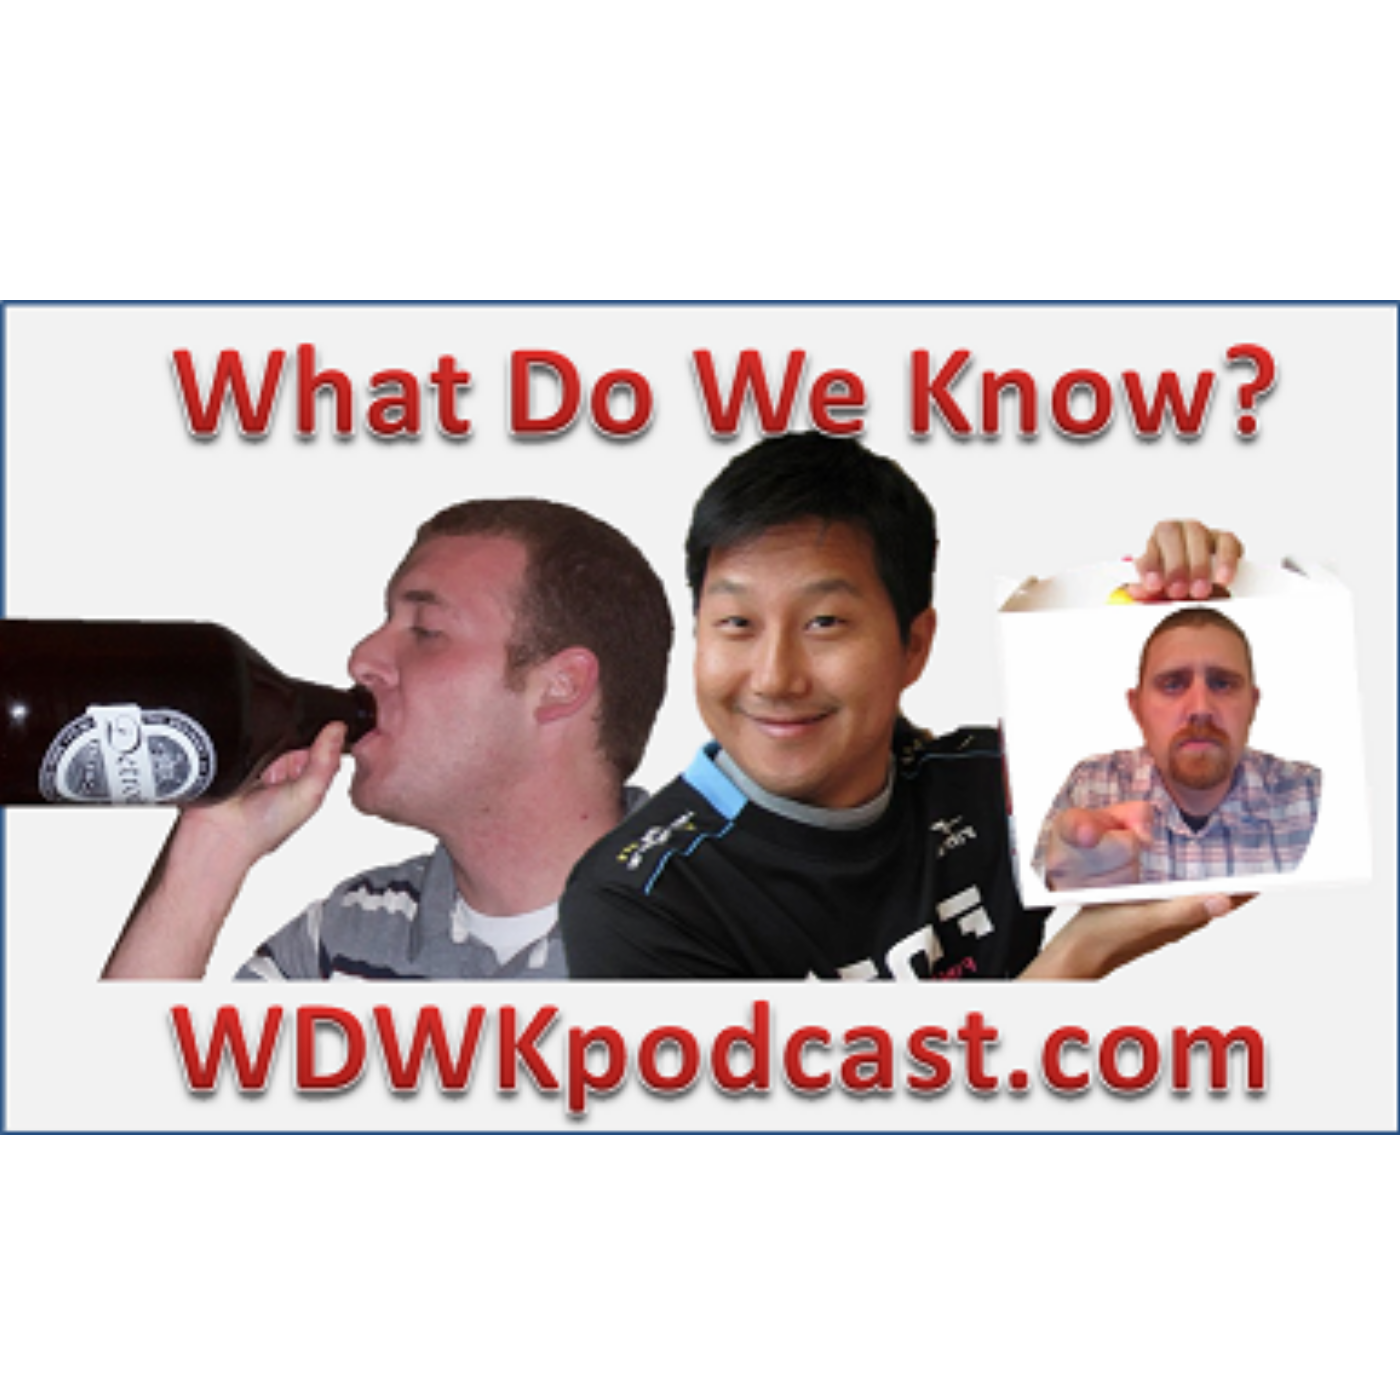 What Do We Know? » What Do We Know podcast